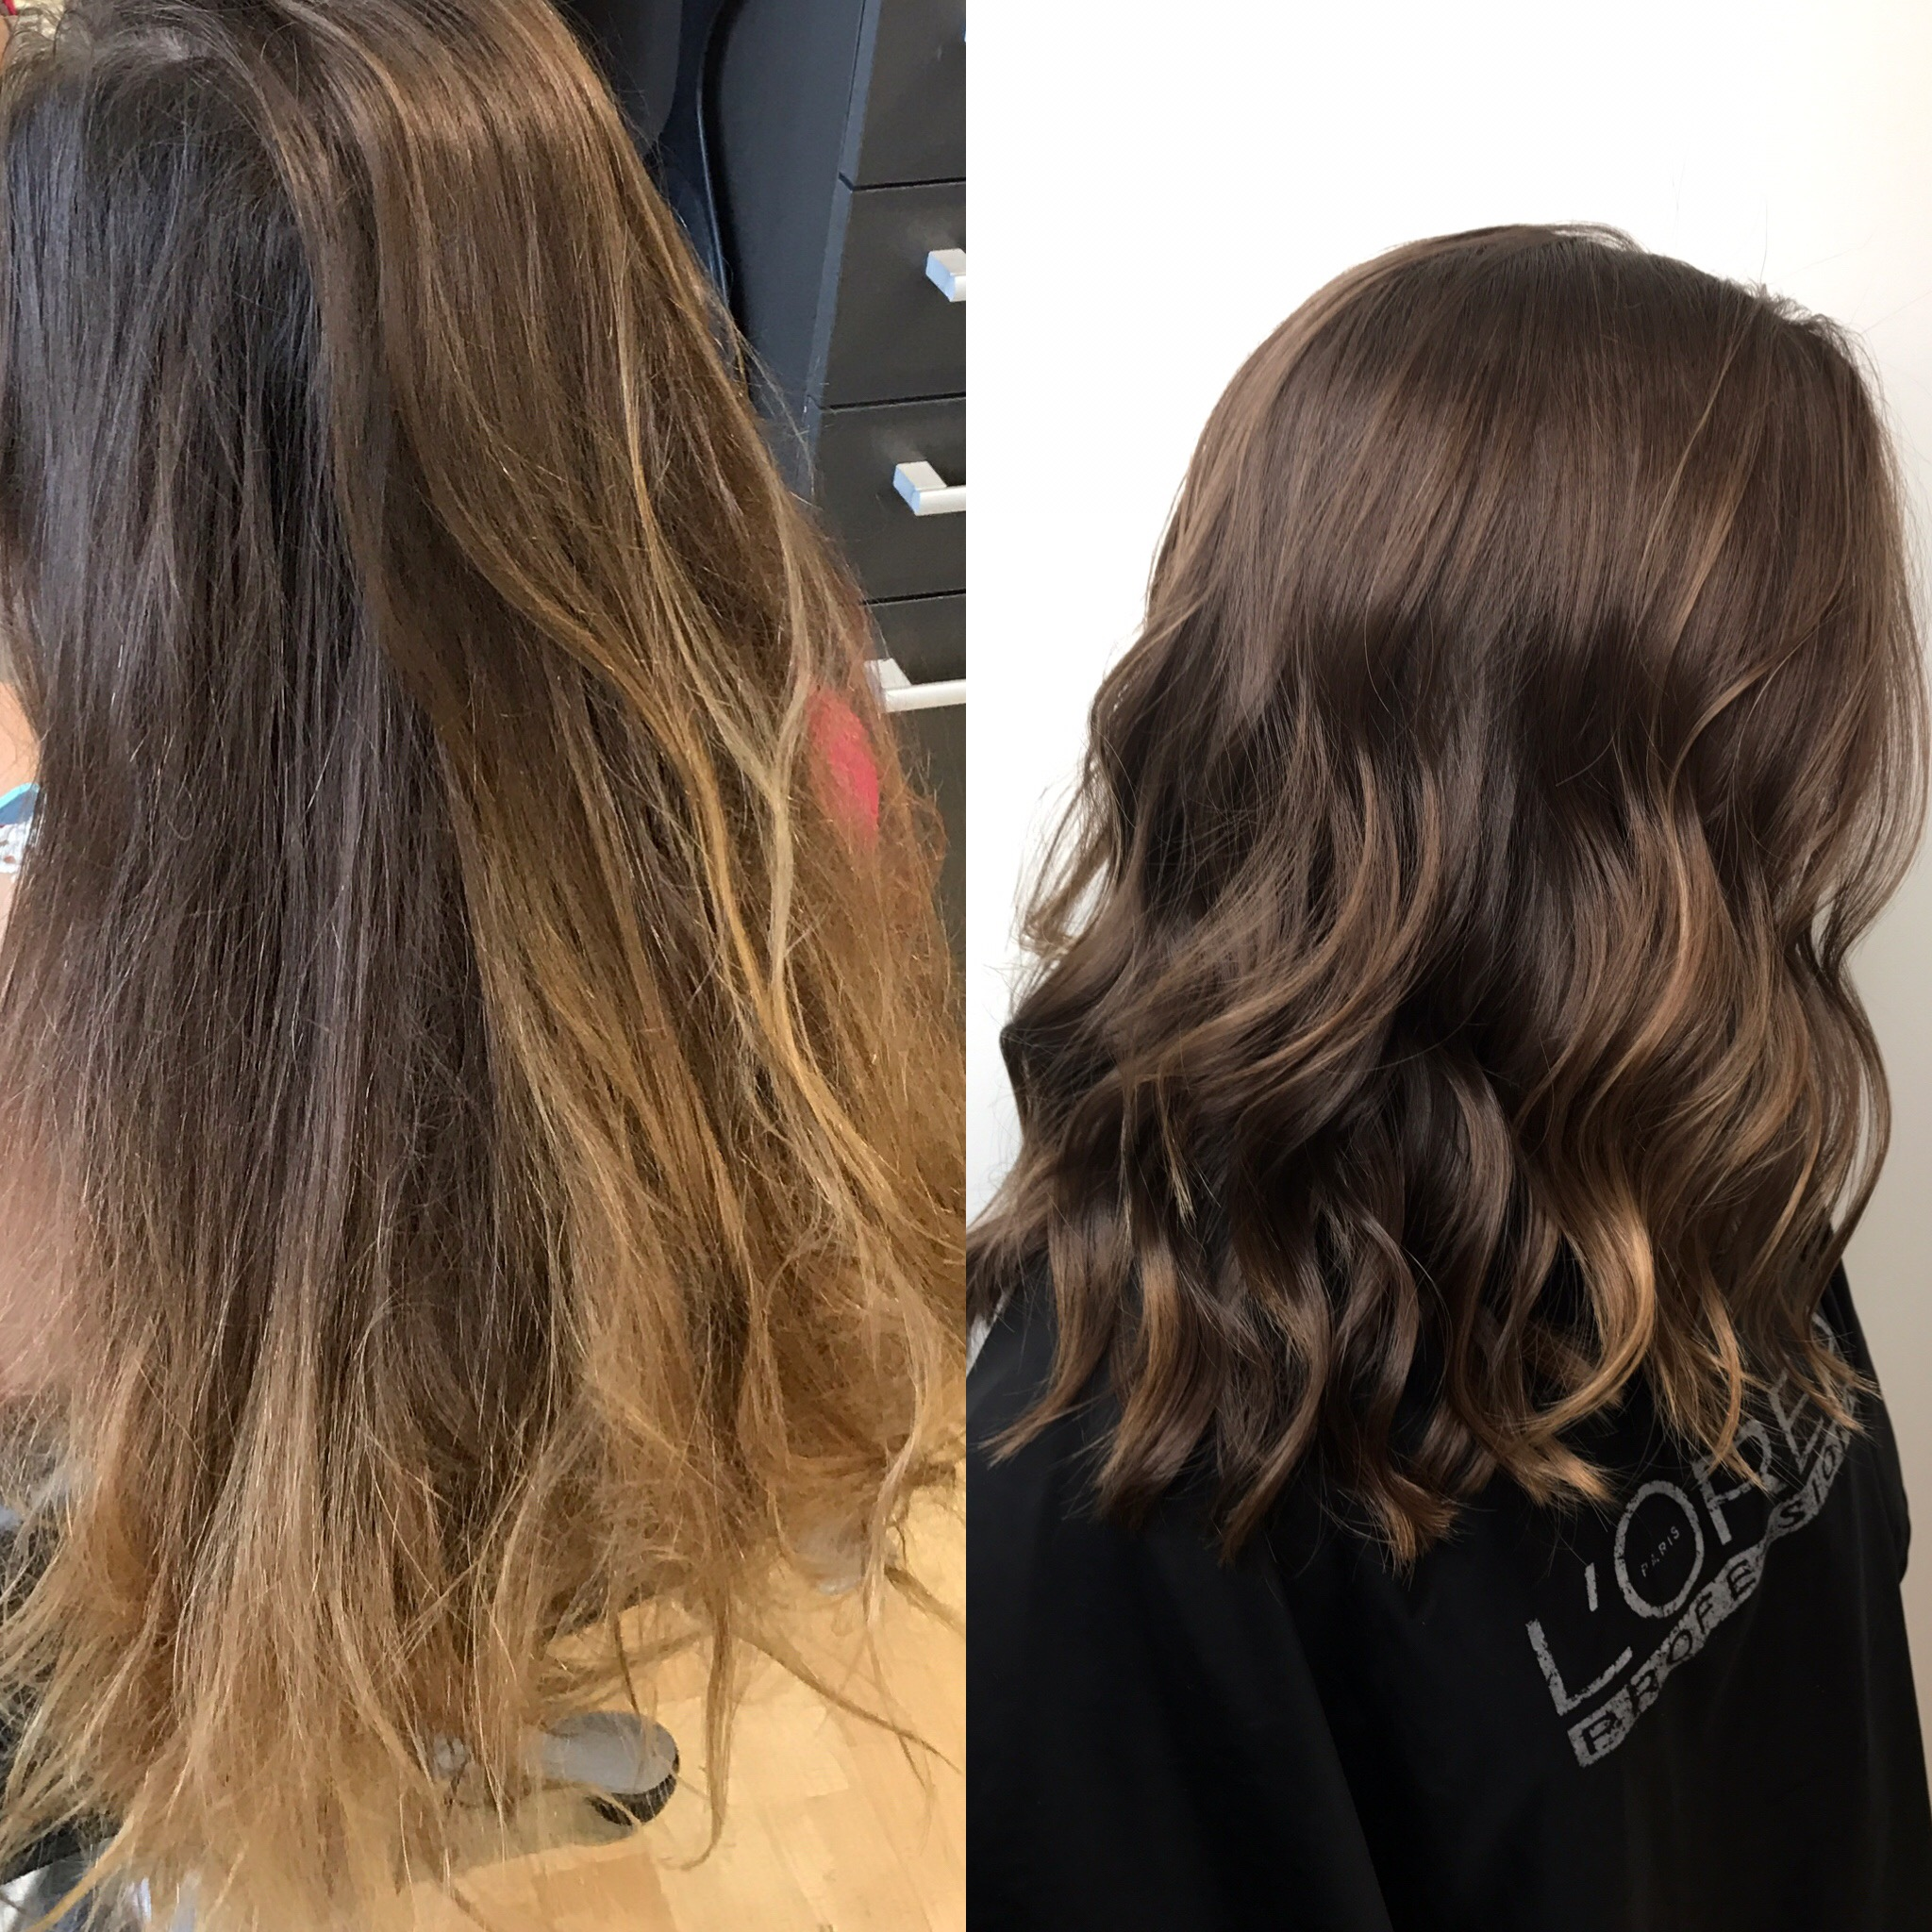 Cut and Conditioning Treatment Reveals Beautiful Hair